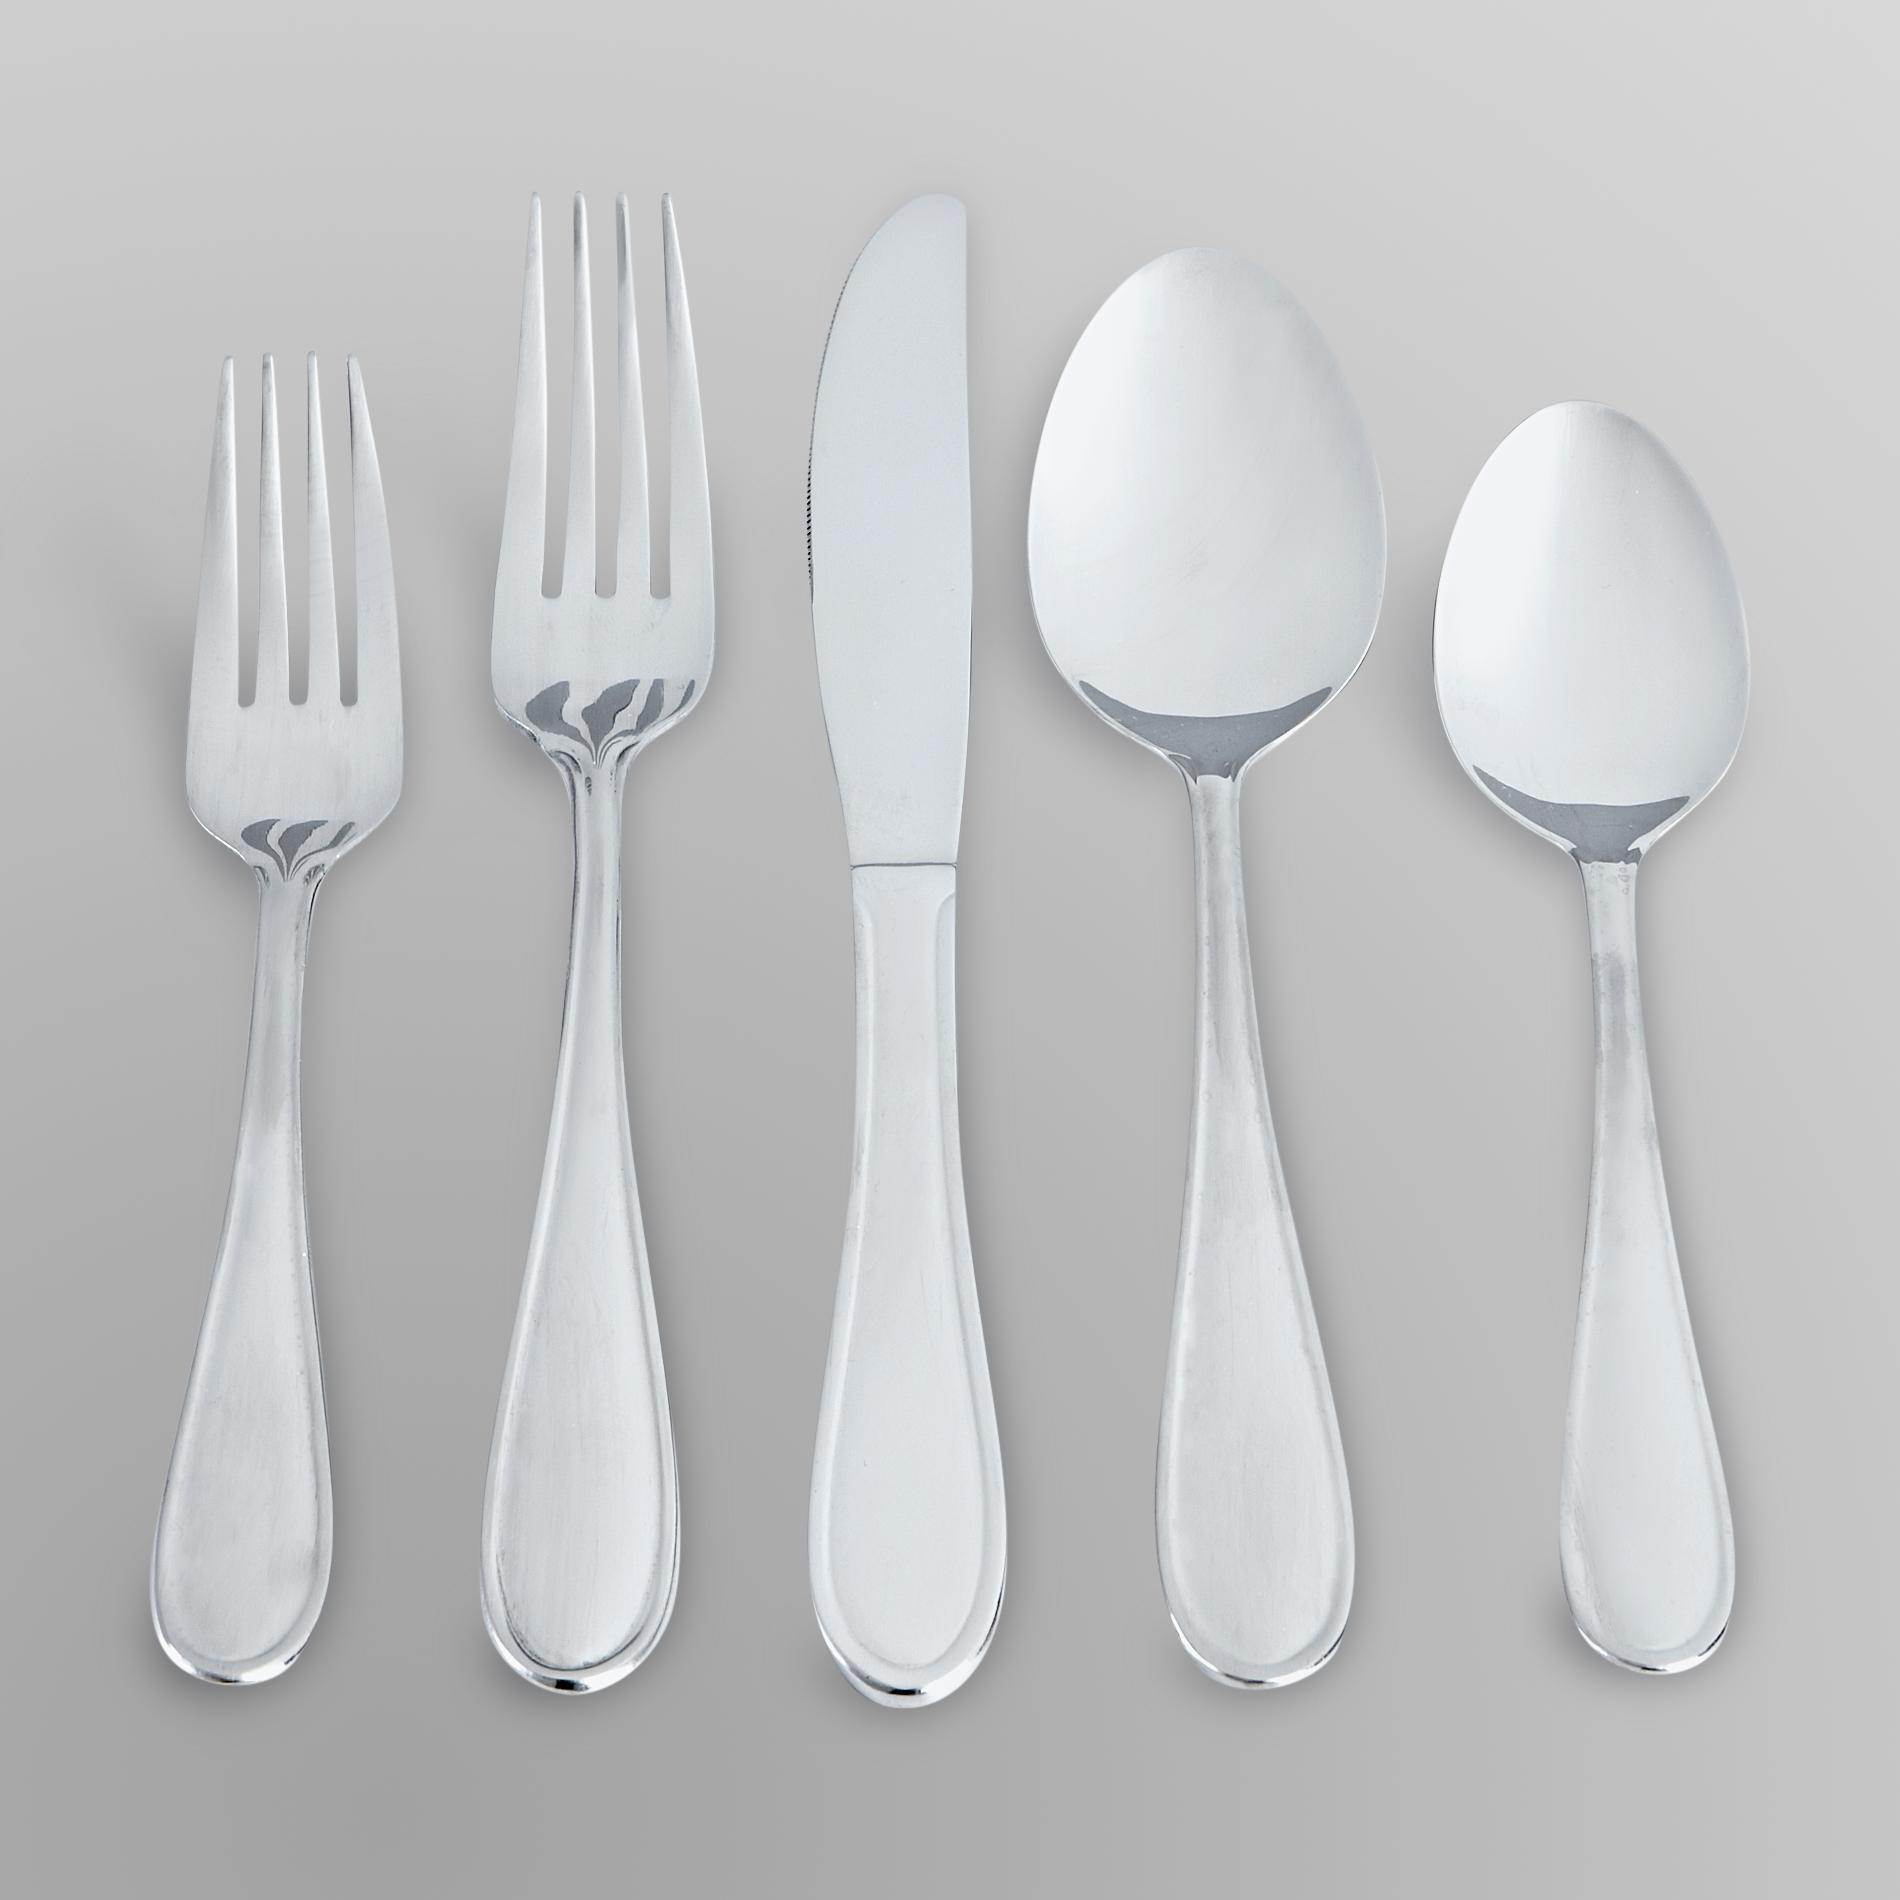 20-Pc. Flatware Set - Ardsley